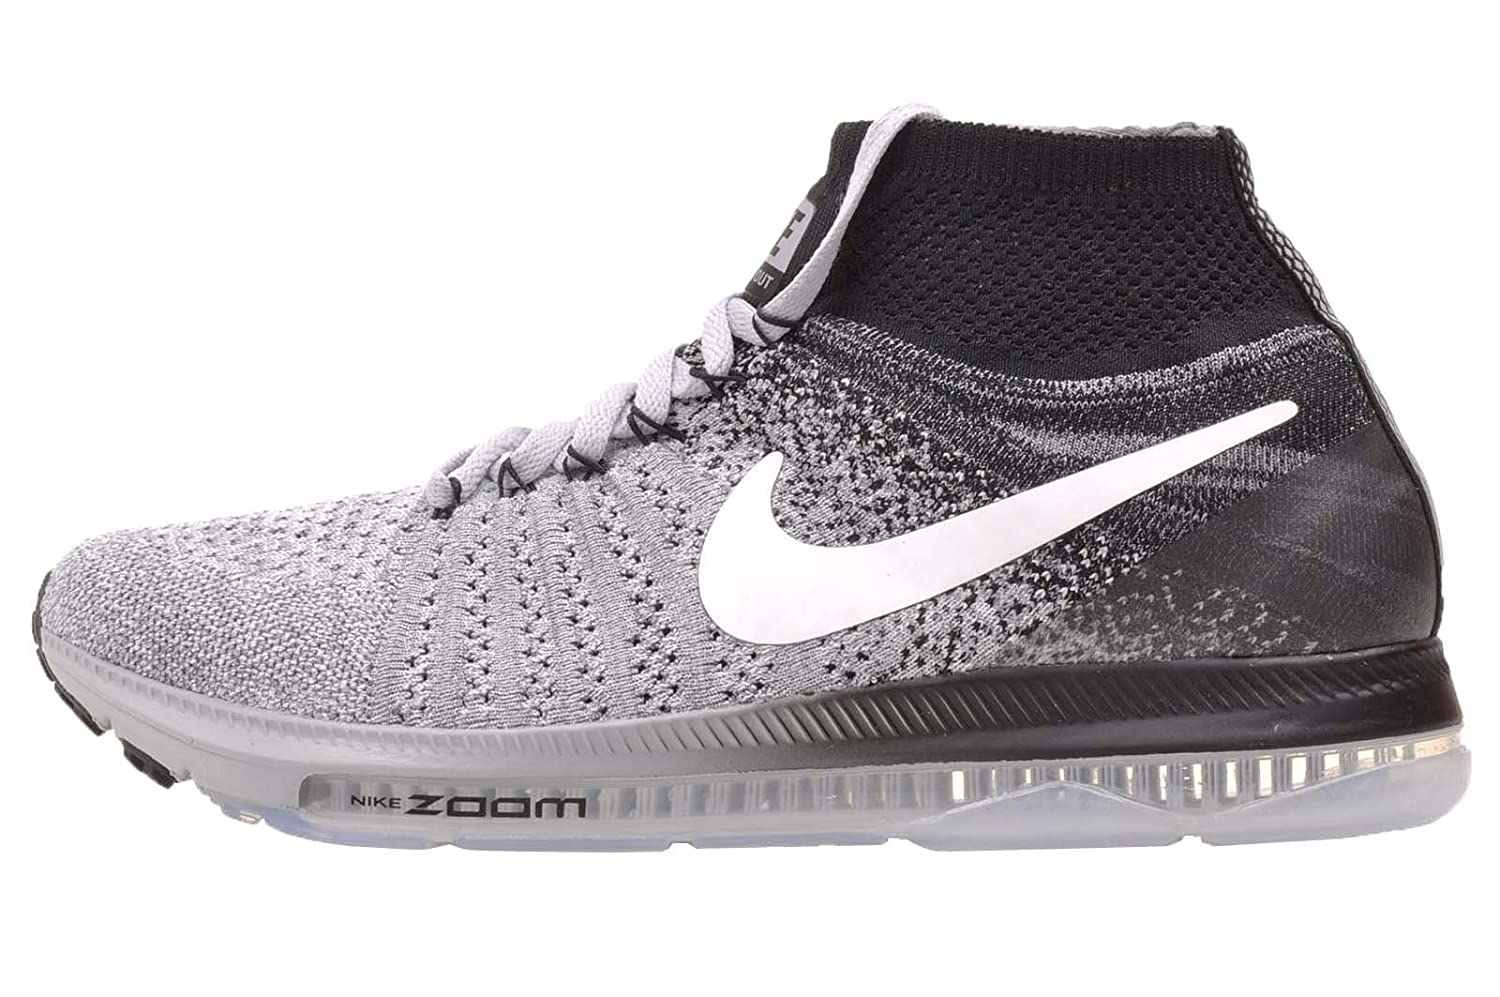 Nike Women's Zoom All Out Flyknit Running Shoes B01M8HX674 8.5 B(M) US|Wolf Grey / White - Black